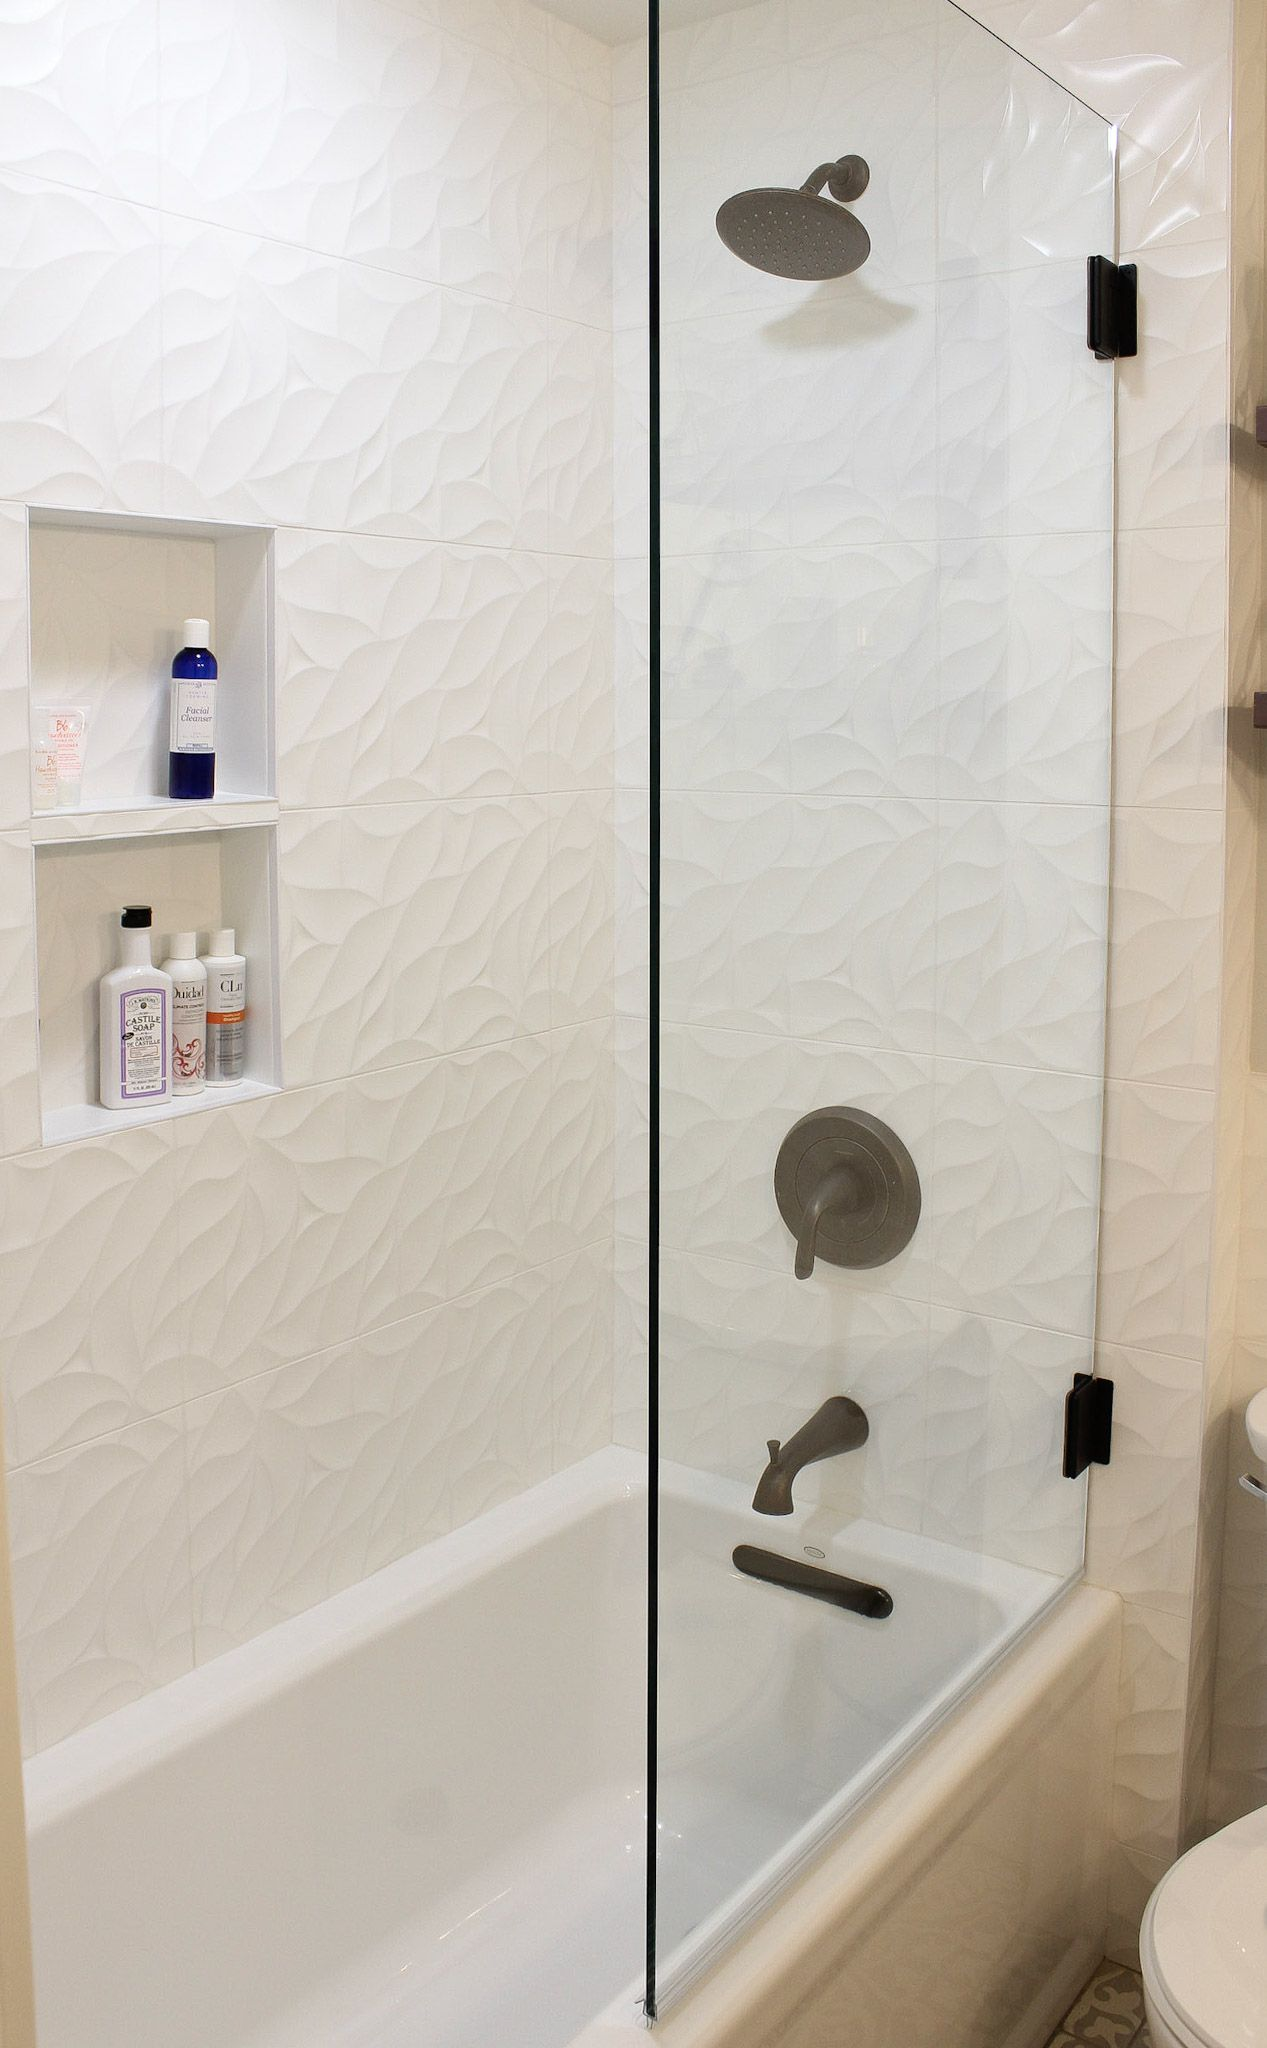 jazz bloom matte white tile from emser built in niche and oil